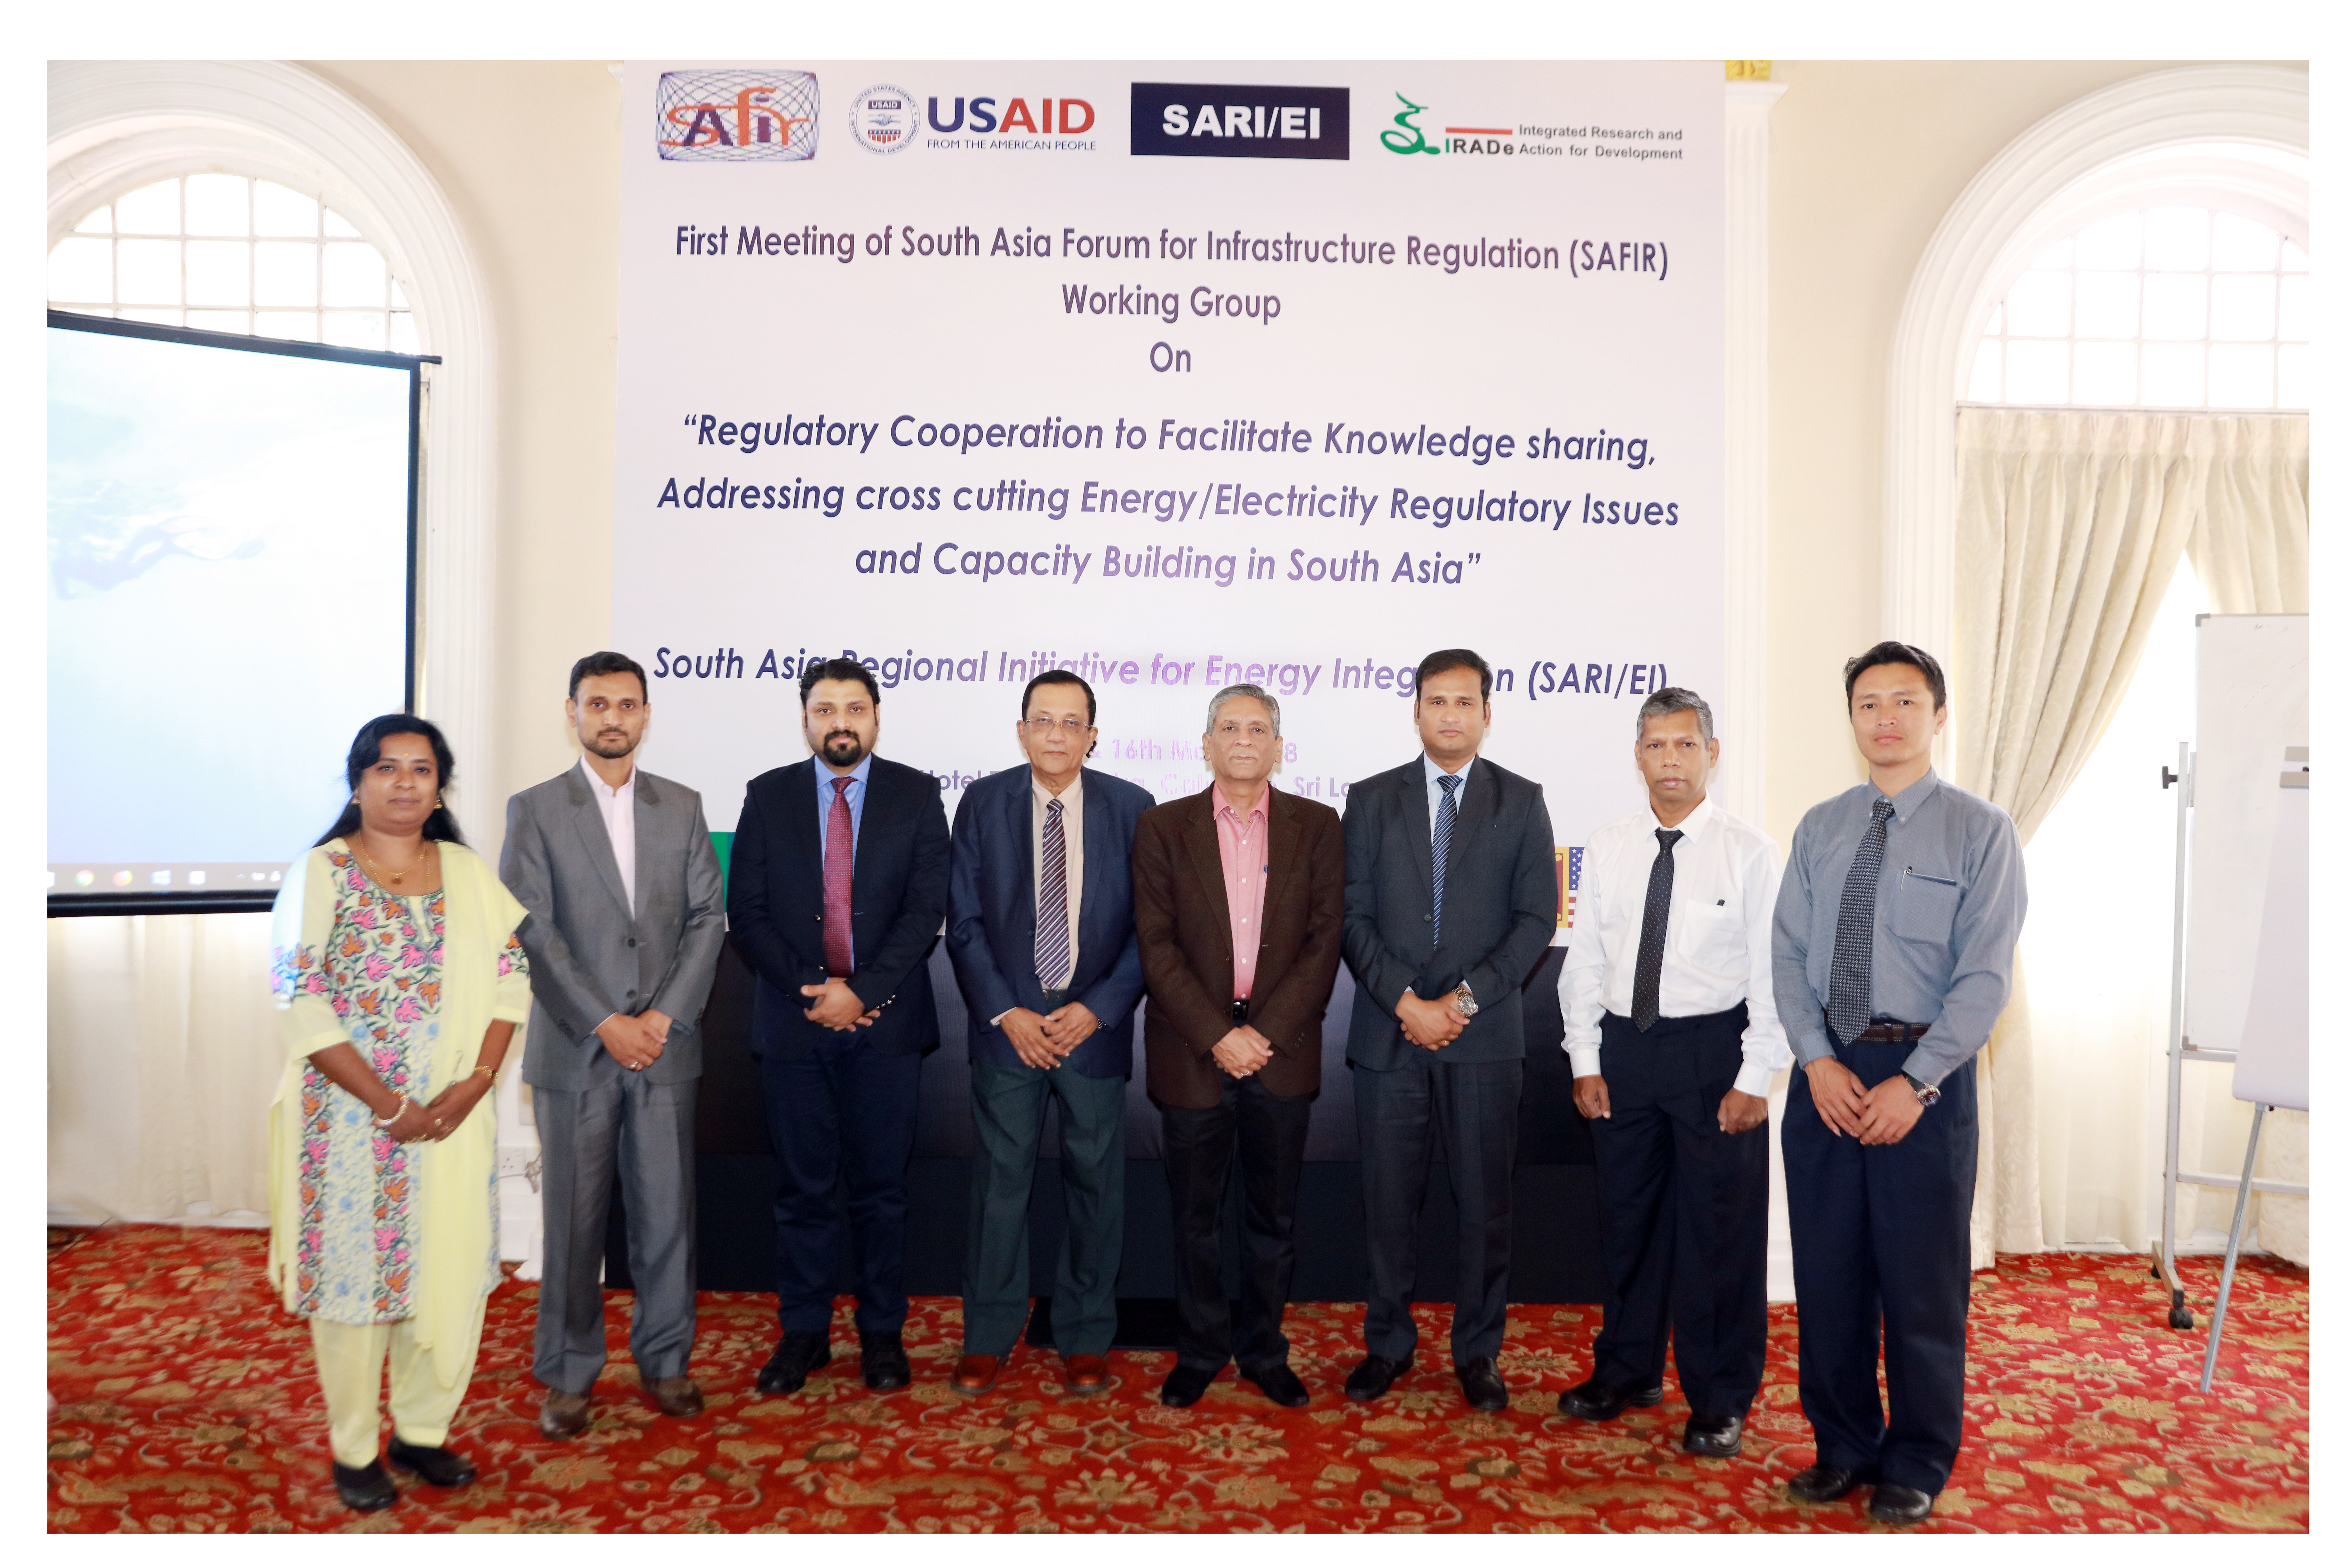 """First Meeting of SAFIR Working Group on """"Regulatory Cooperation to Facilitate Knowledge sharing, addressing Cross cutting Energy/Electricity Regulatory Issues and Capacity Building in South Asia"""" 15th-16th May, 2018, Hotel Taj Samudra, Colombo, Sri Lanka"""